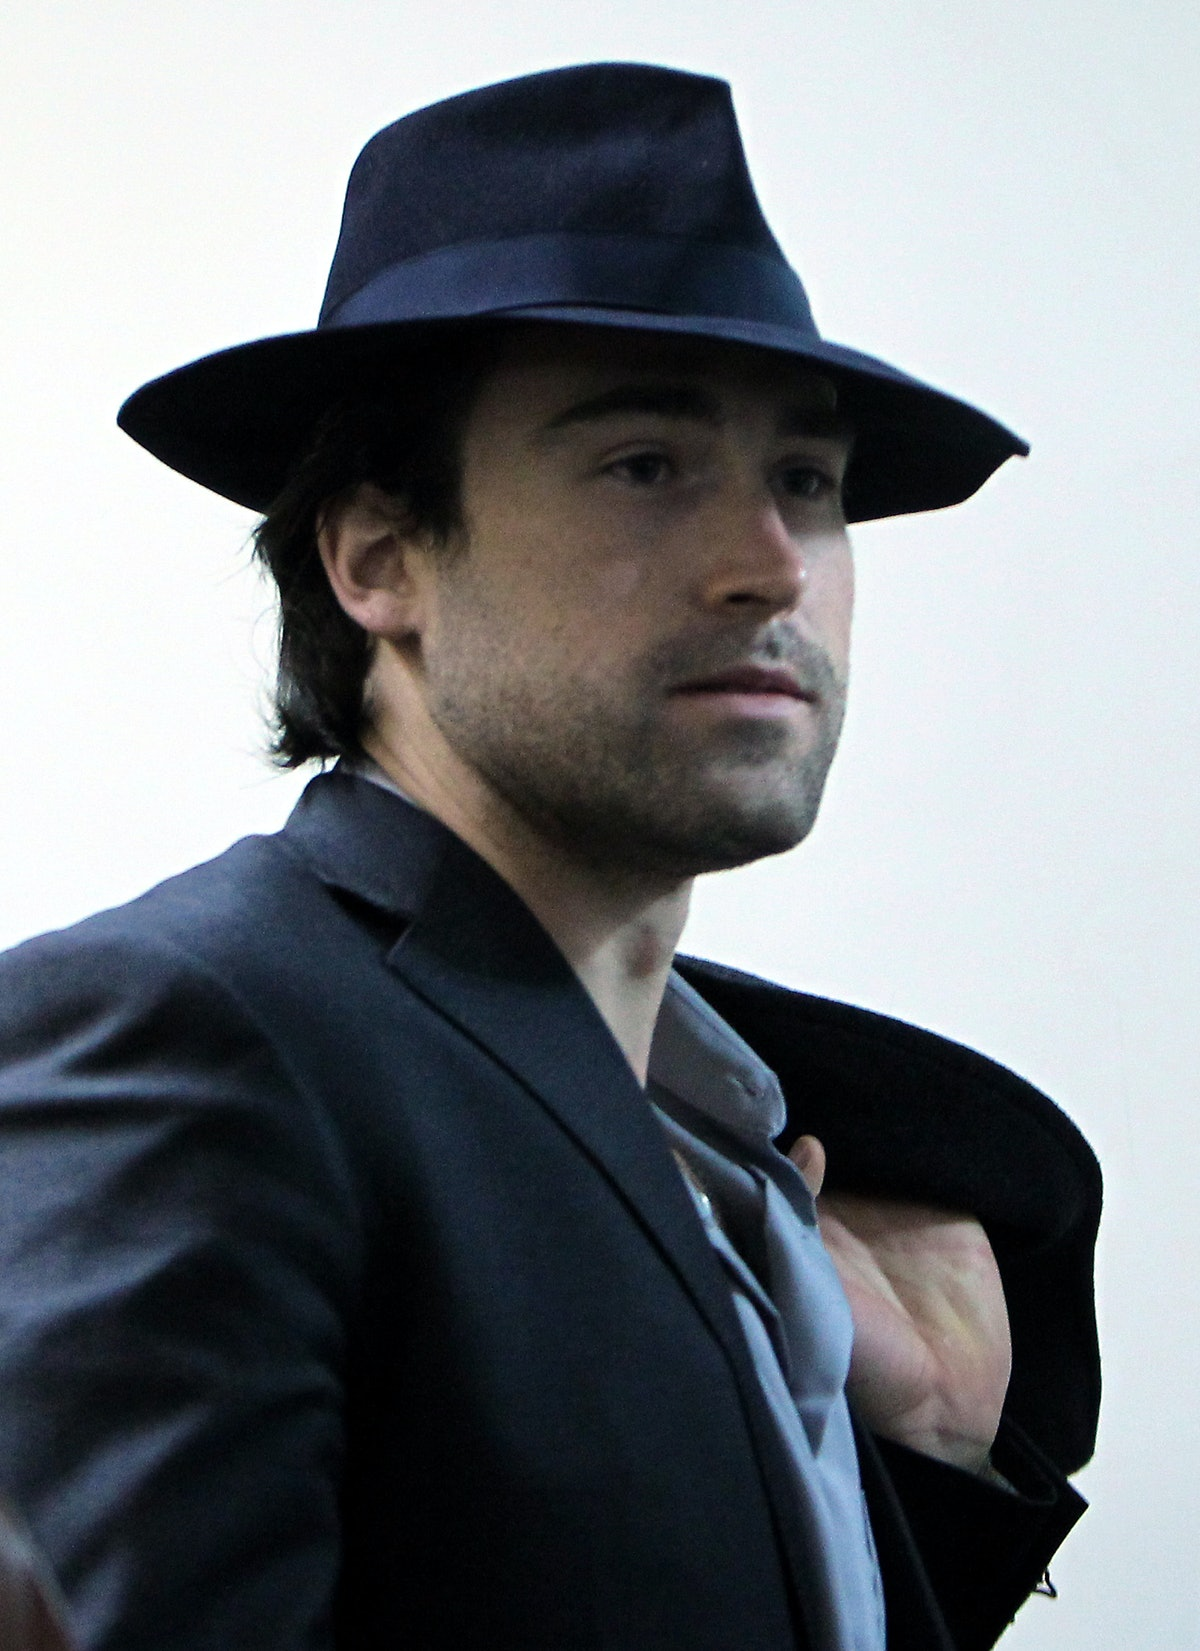 US filmmaker Sean Stone, son of Oscar-winning director Oliver Stone, arrives to hold a press confere...